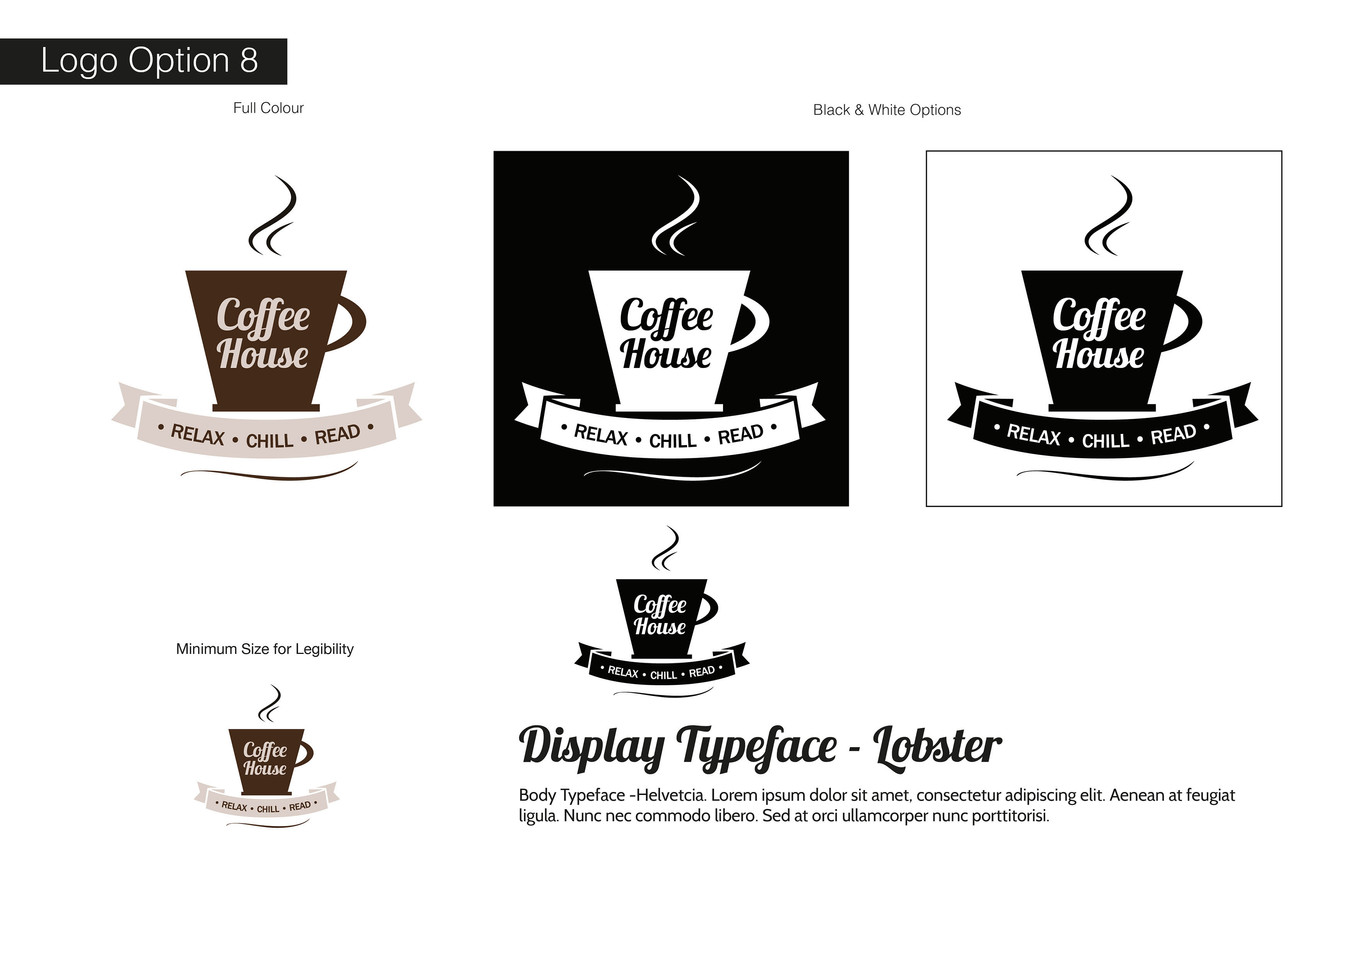 Coffee House Visual Identity - Development 8